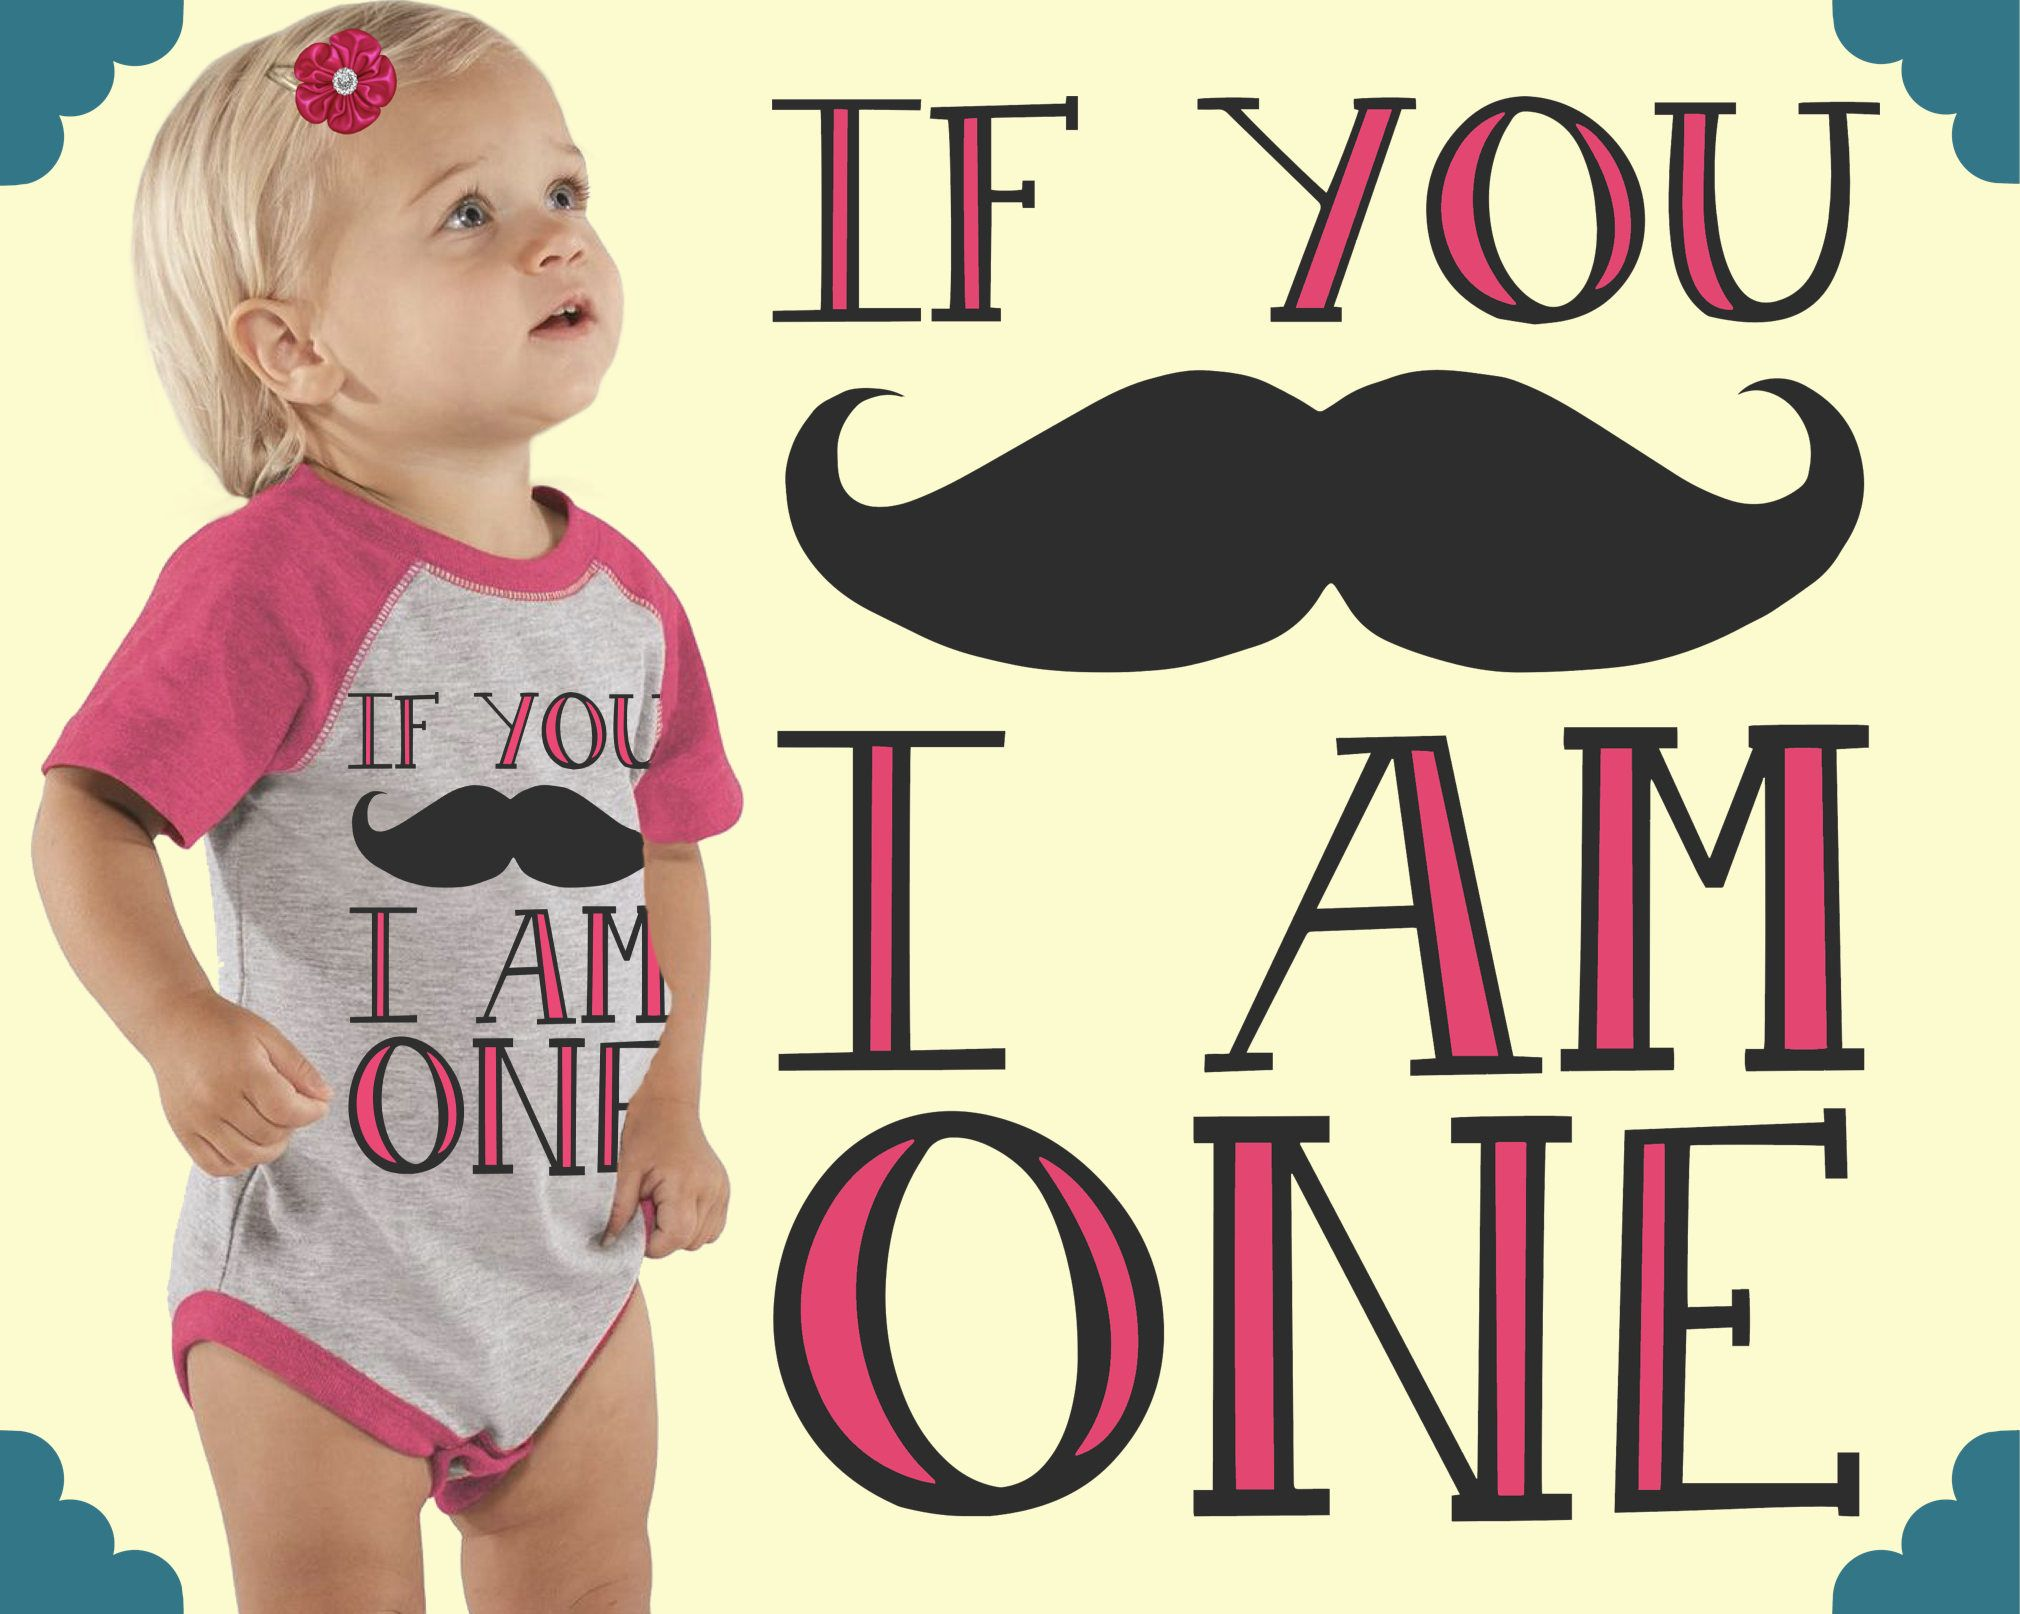 One year old mustache girl clothes personalized baby one year old mustache girl clothes personalized baby custom baby gift custom baby clothes kids tshirt teal blvd negle Image collections